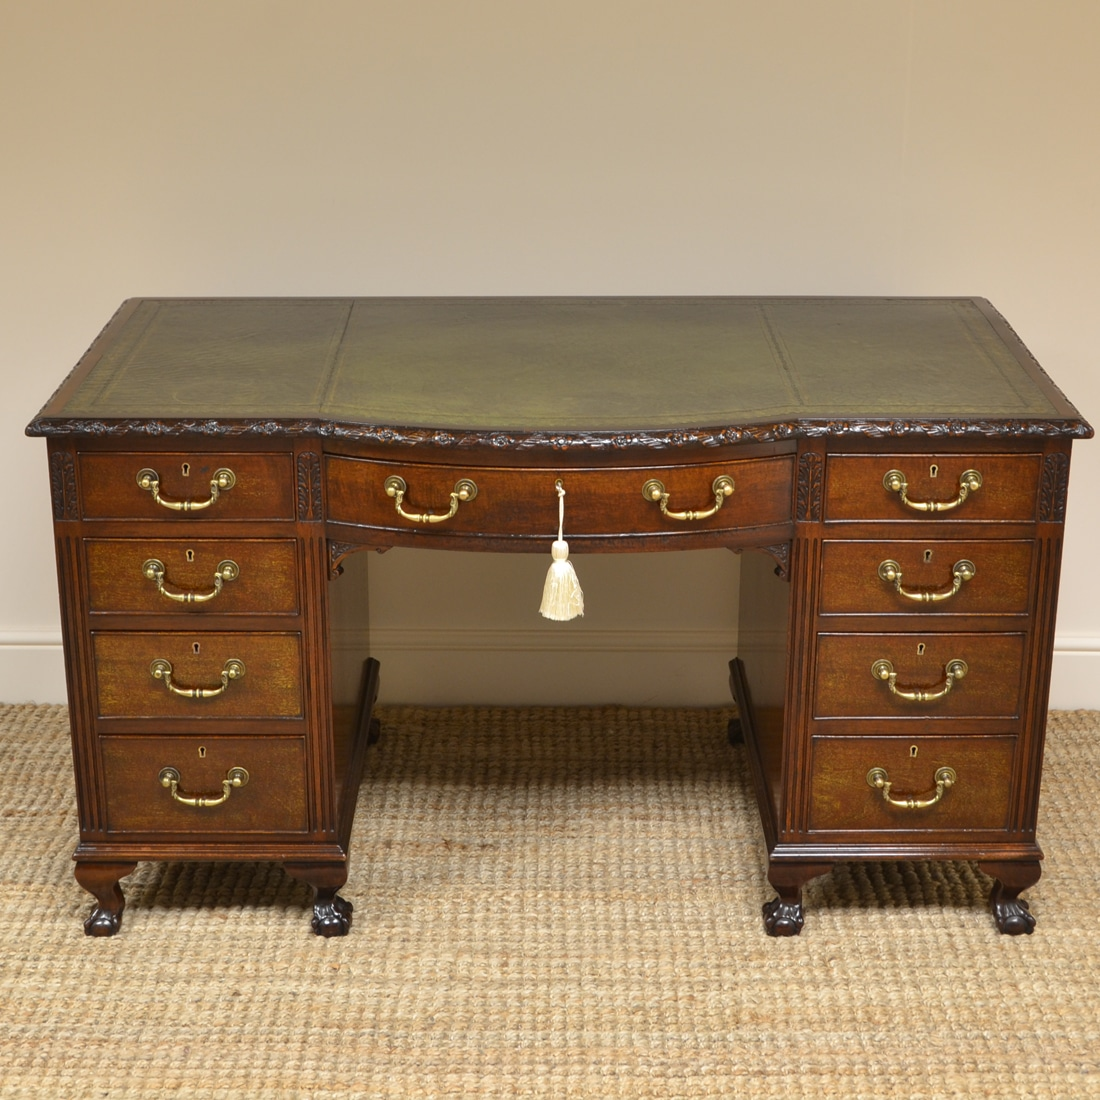 Fabulous Quality Edwardian Mahogany Antique Desk Home Interior And Landscaping Oversignezvosmurscom